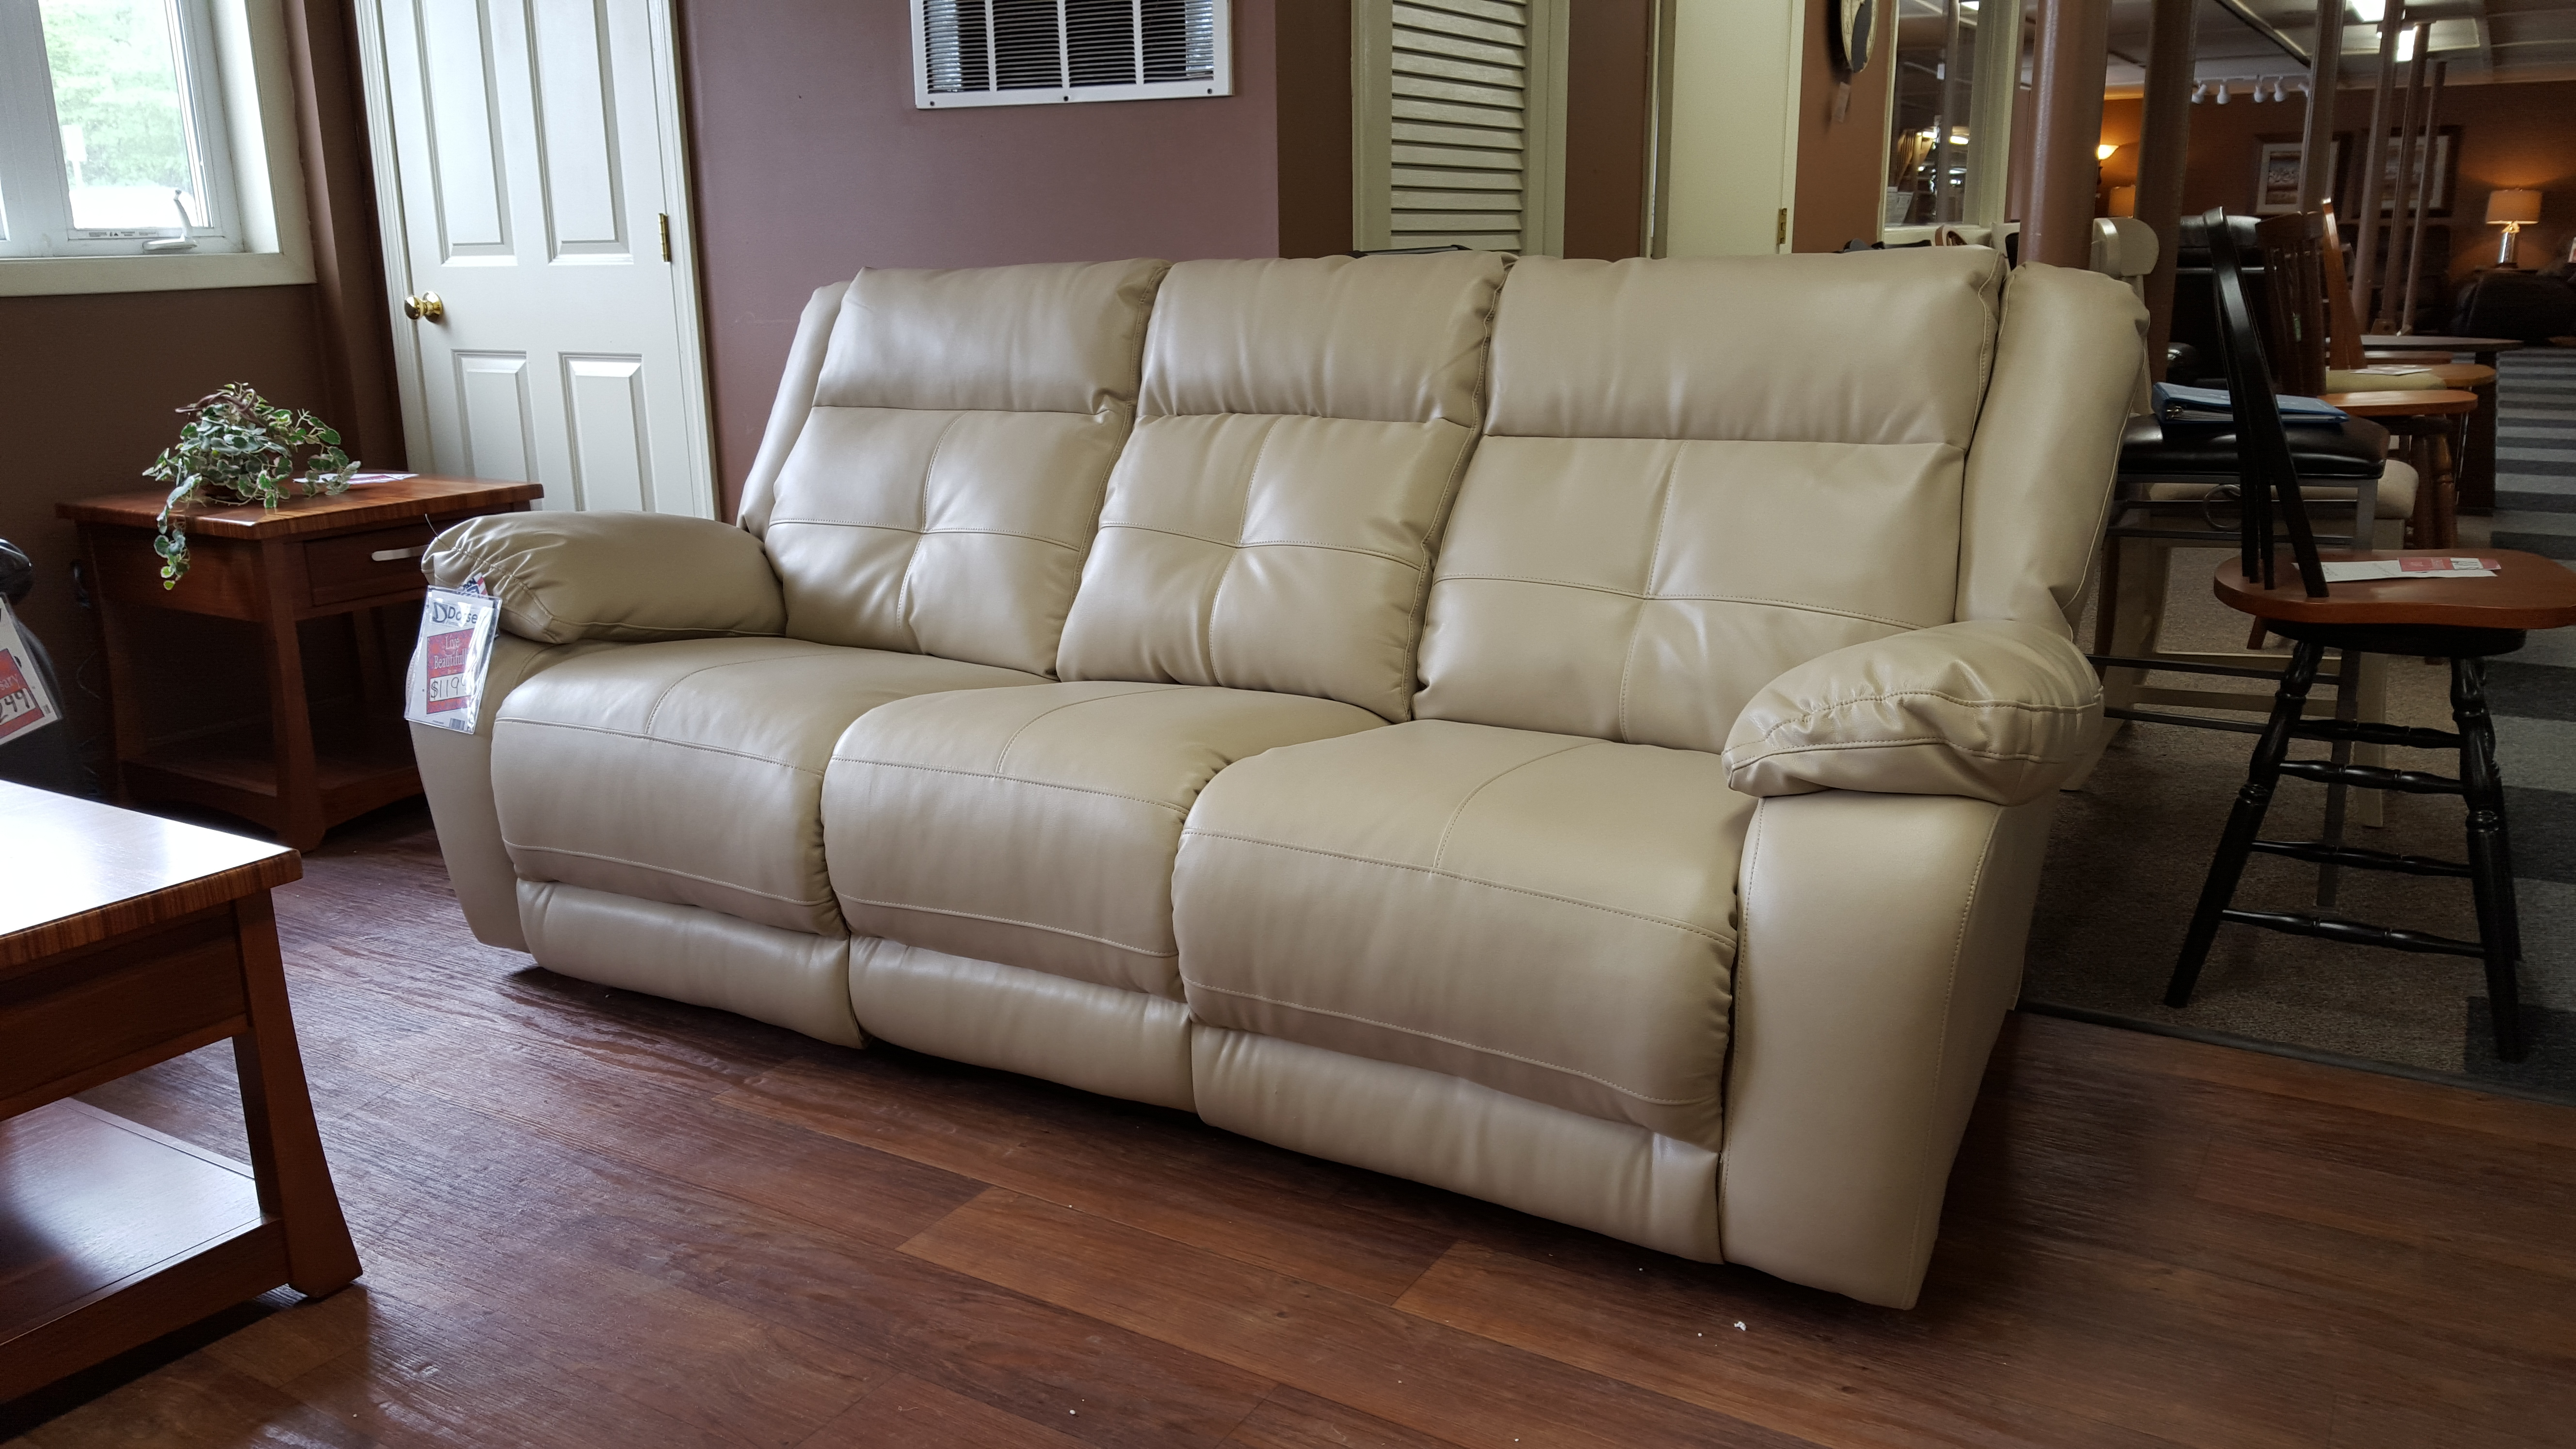 store maine reclining product stores sofa miami room bangor living furniture couch